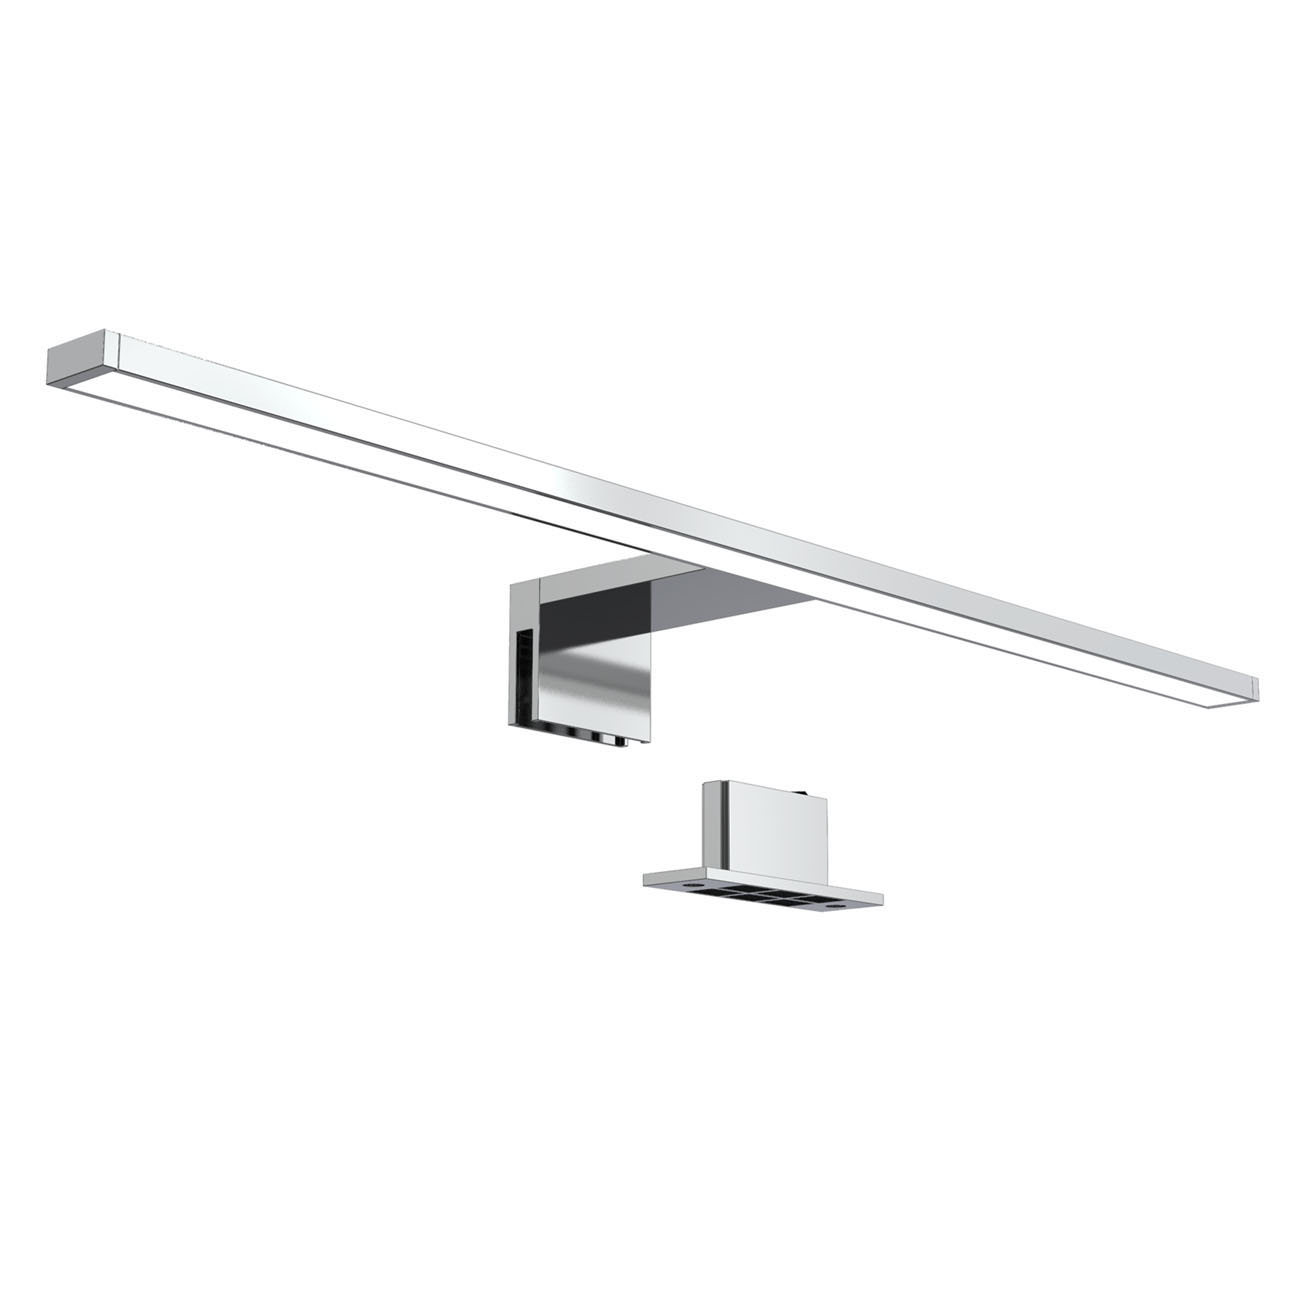 LED Spiegelleuchte Badlampe IP44 neutral-weiß M chrom